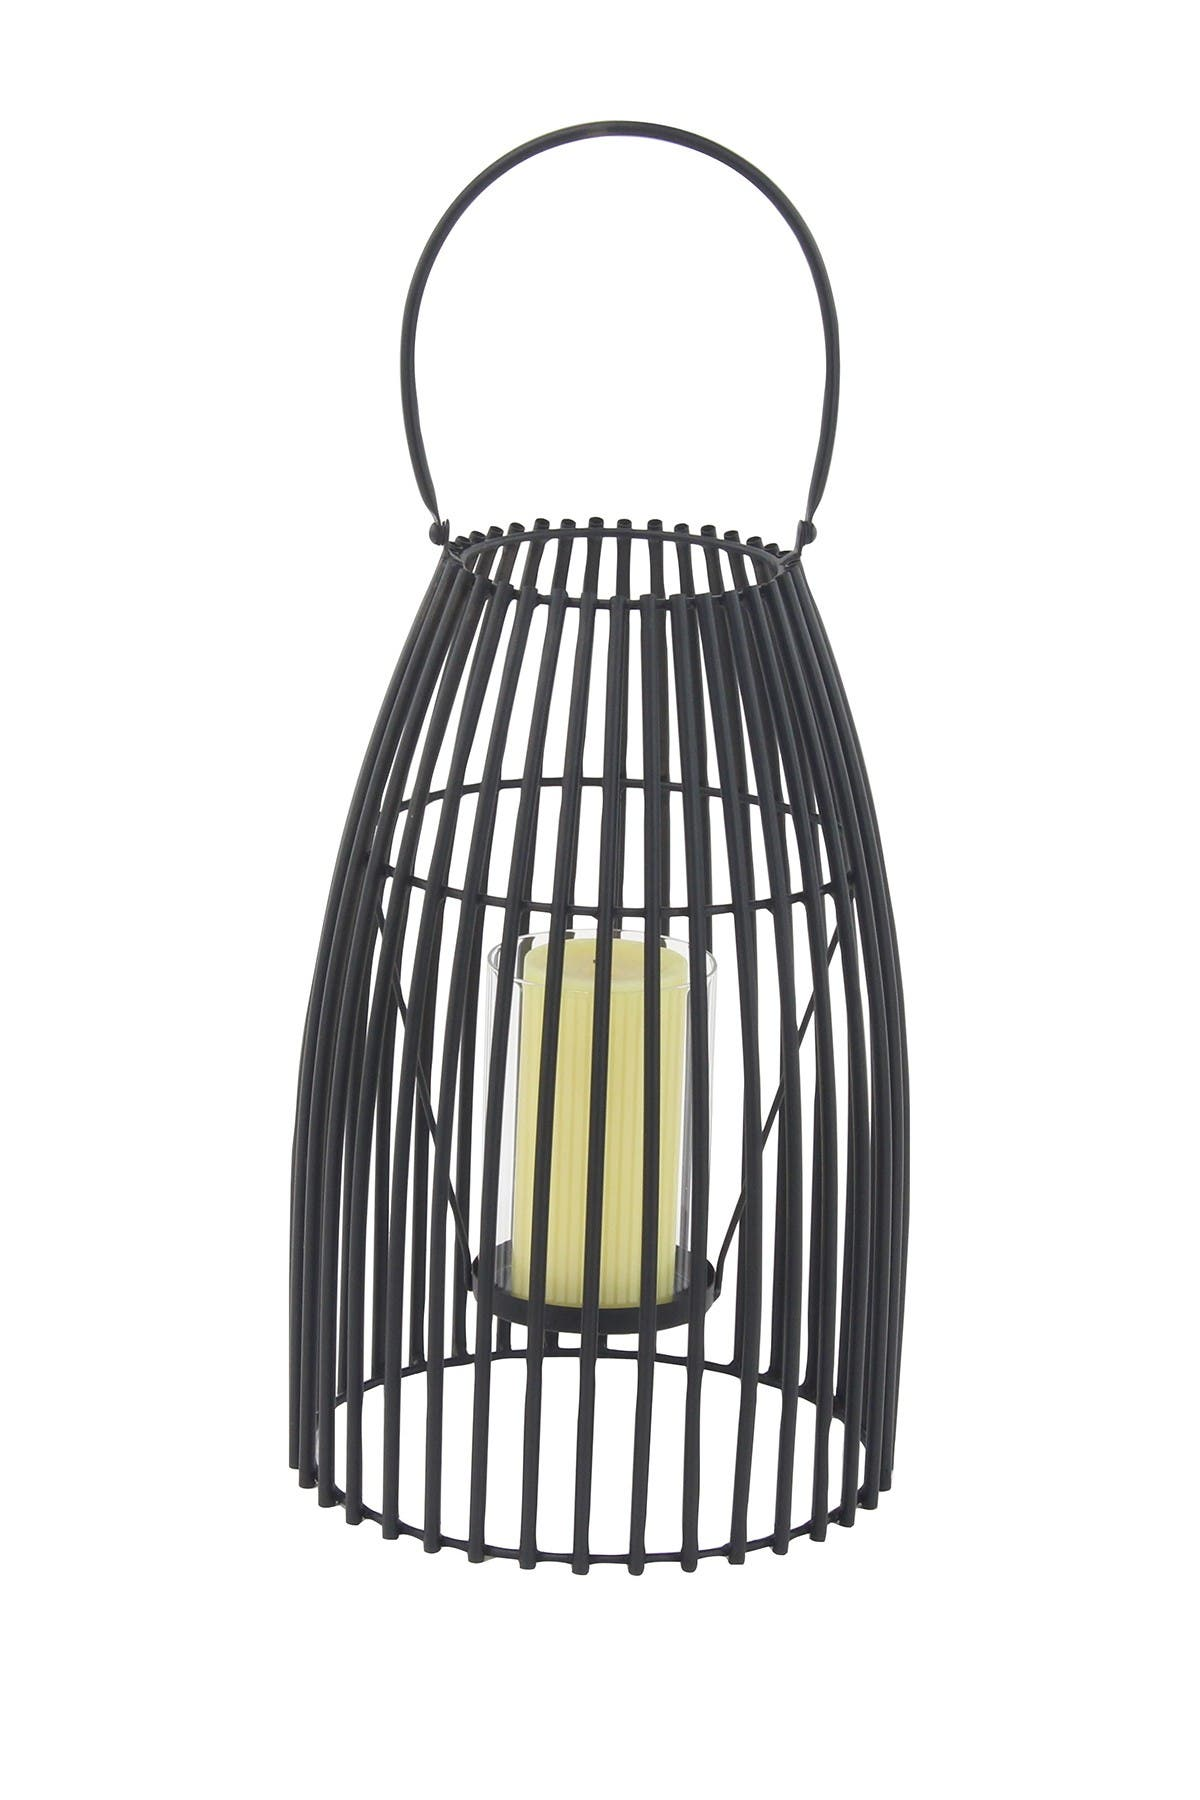 Willow Row 16 Modern Iron And Glass Decorative Caged Black Lantern Nordstrom Rack